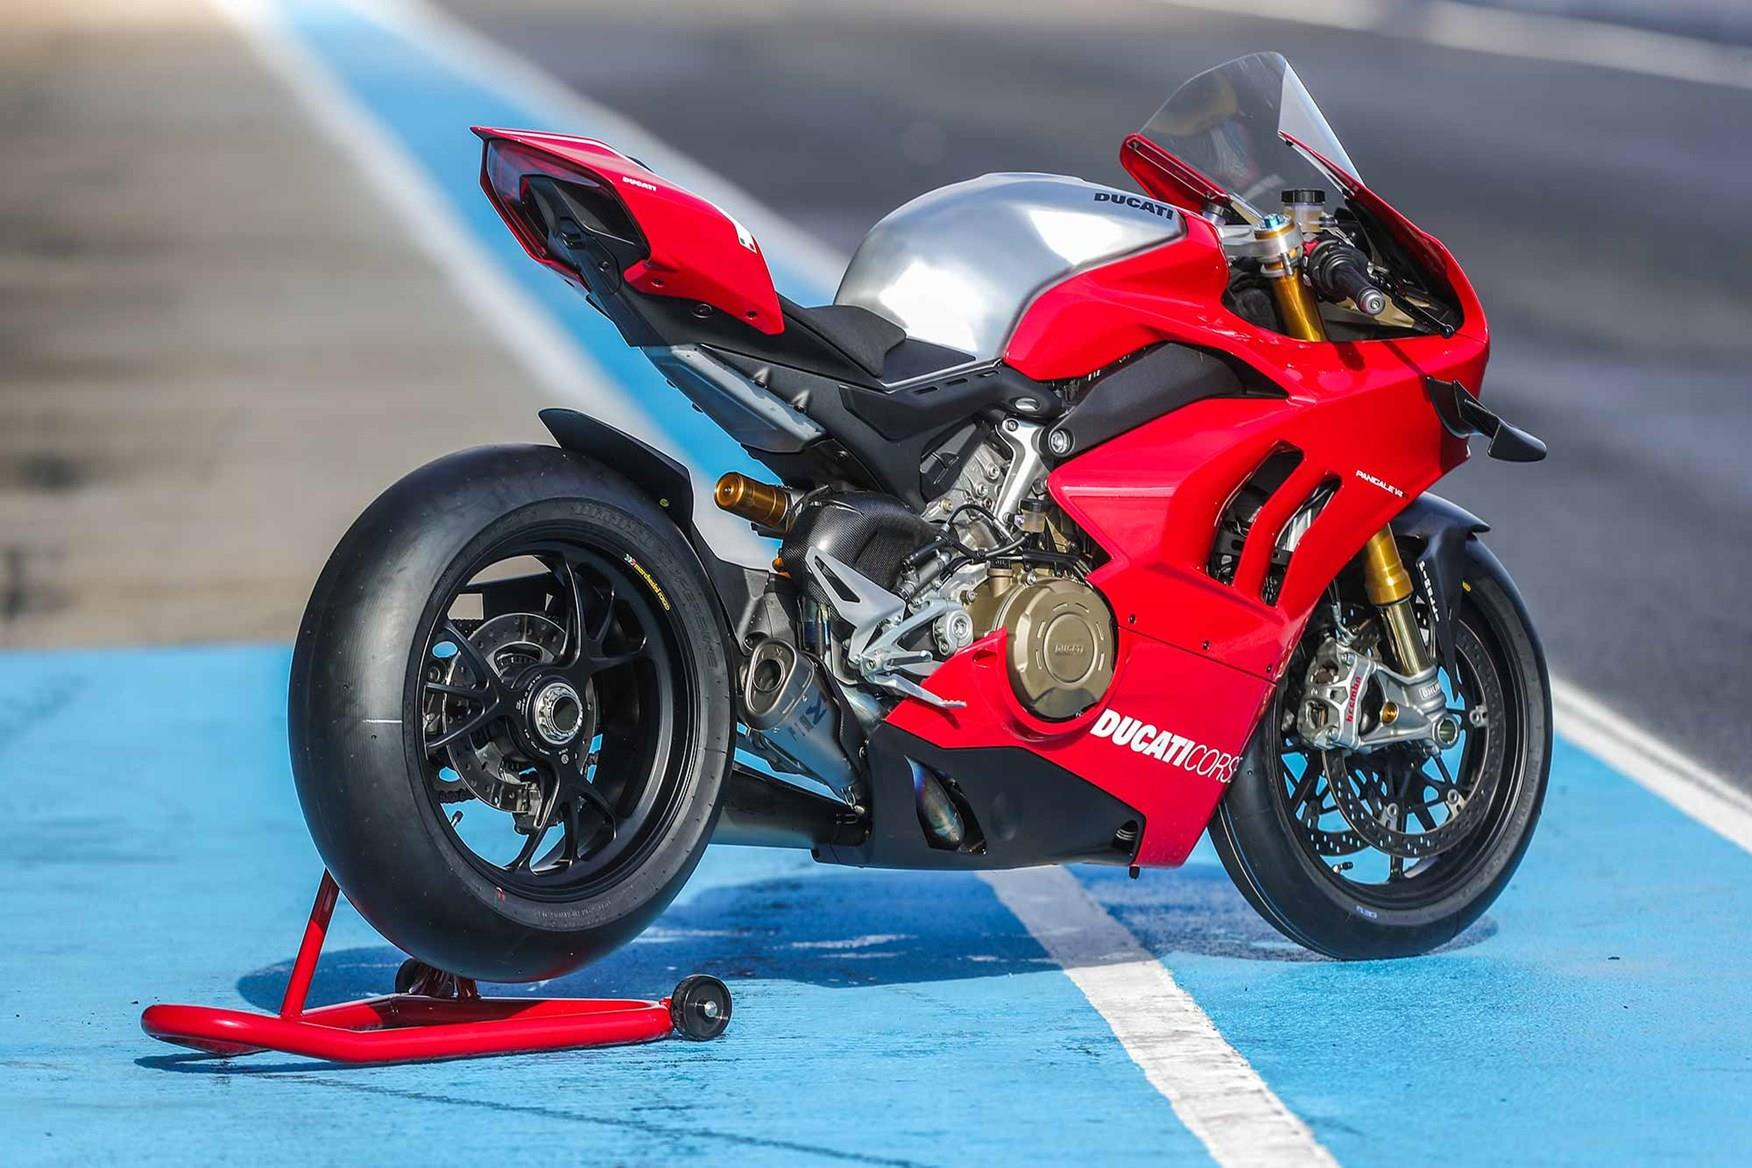 The rear end of the Ducati Panigale V4R